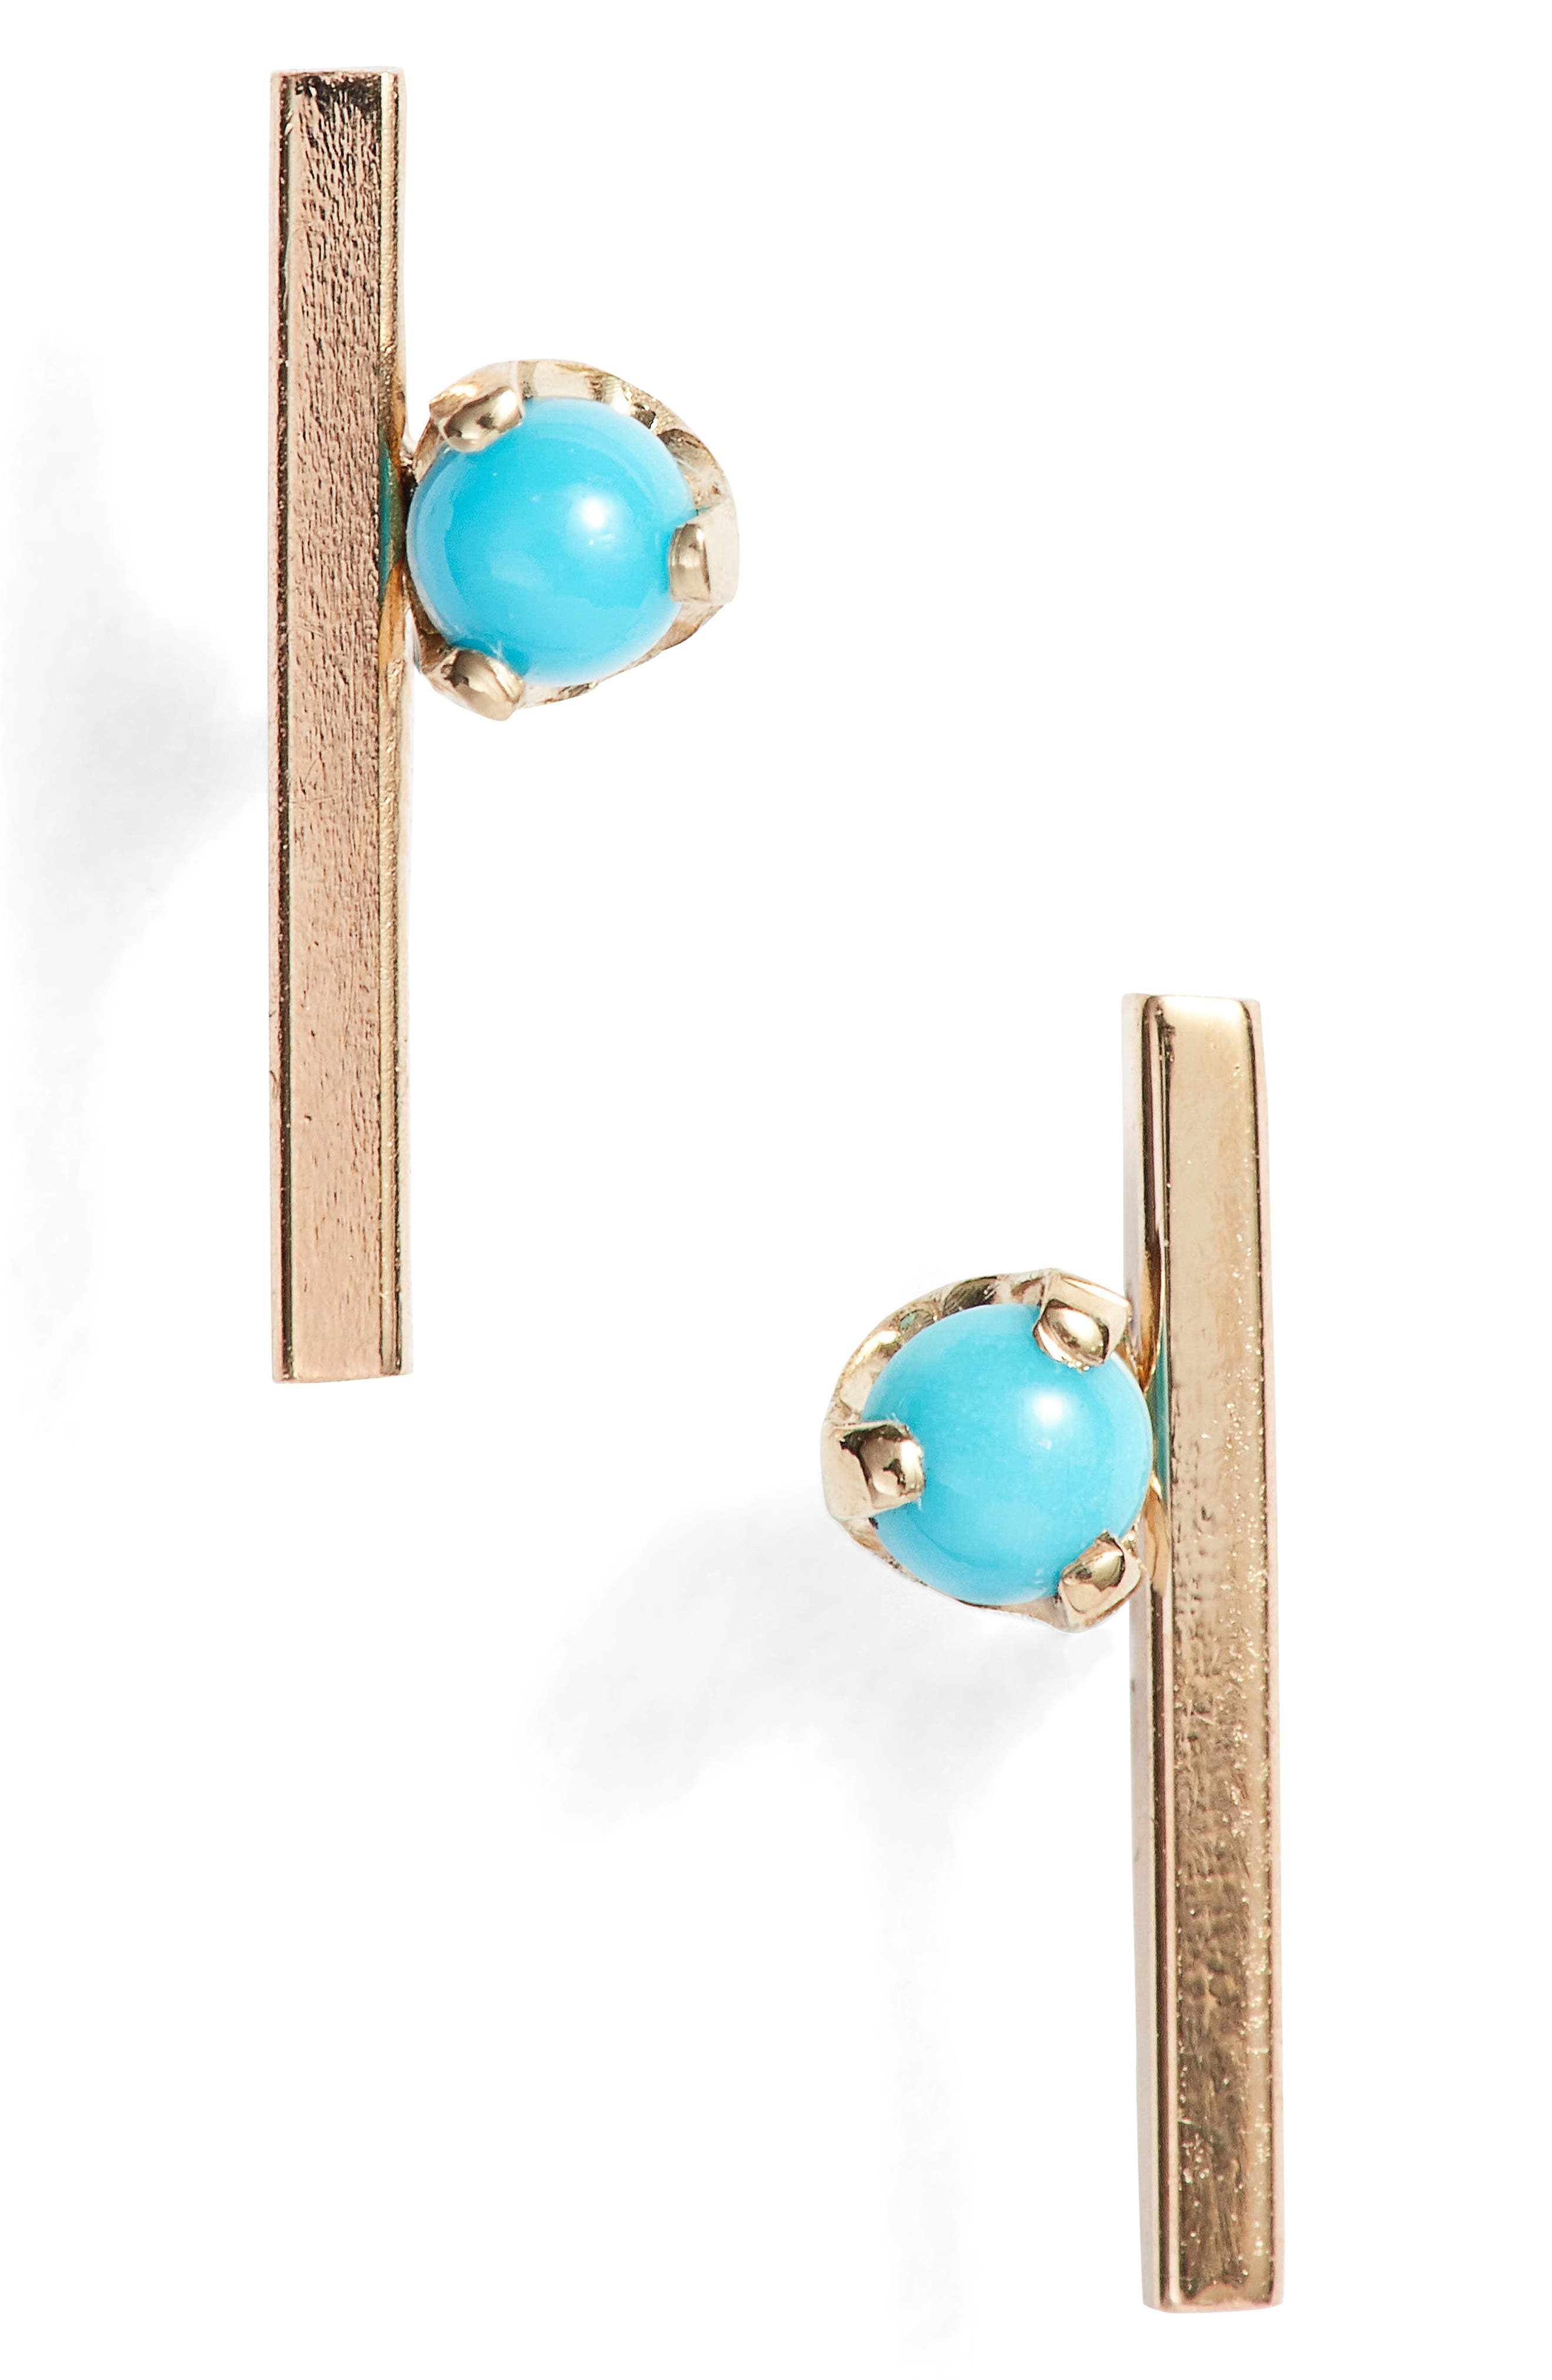 Floating Bar Turquoise Stud Earrings,                             Main thumbnail 1, color,                             Yellow Gold/ Turquoise